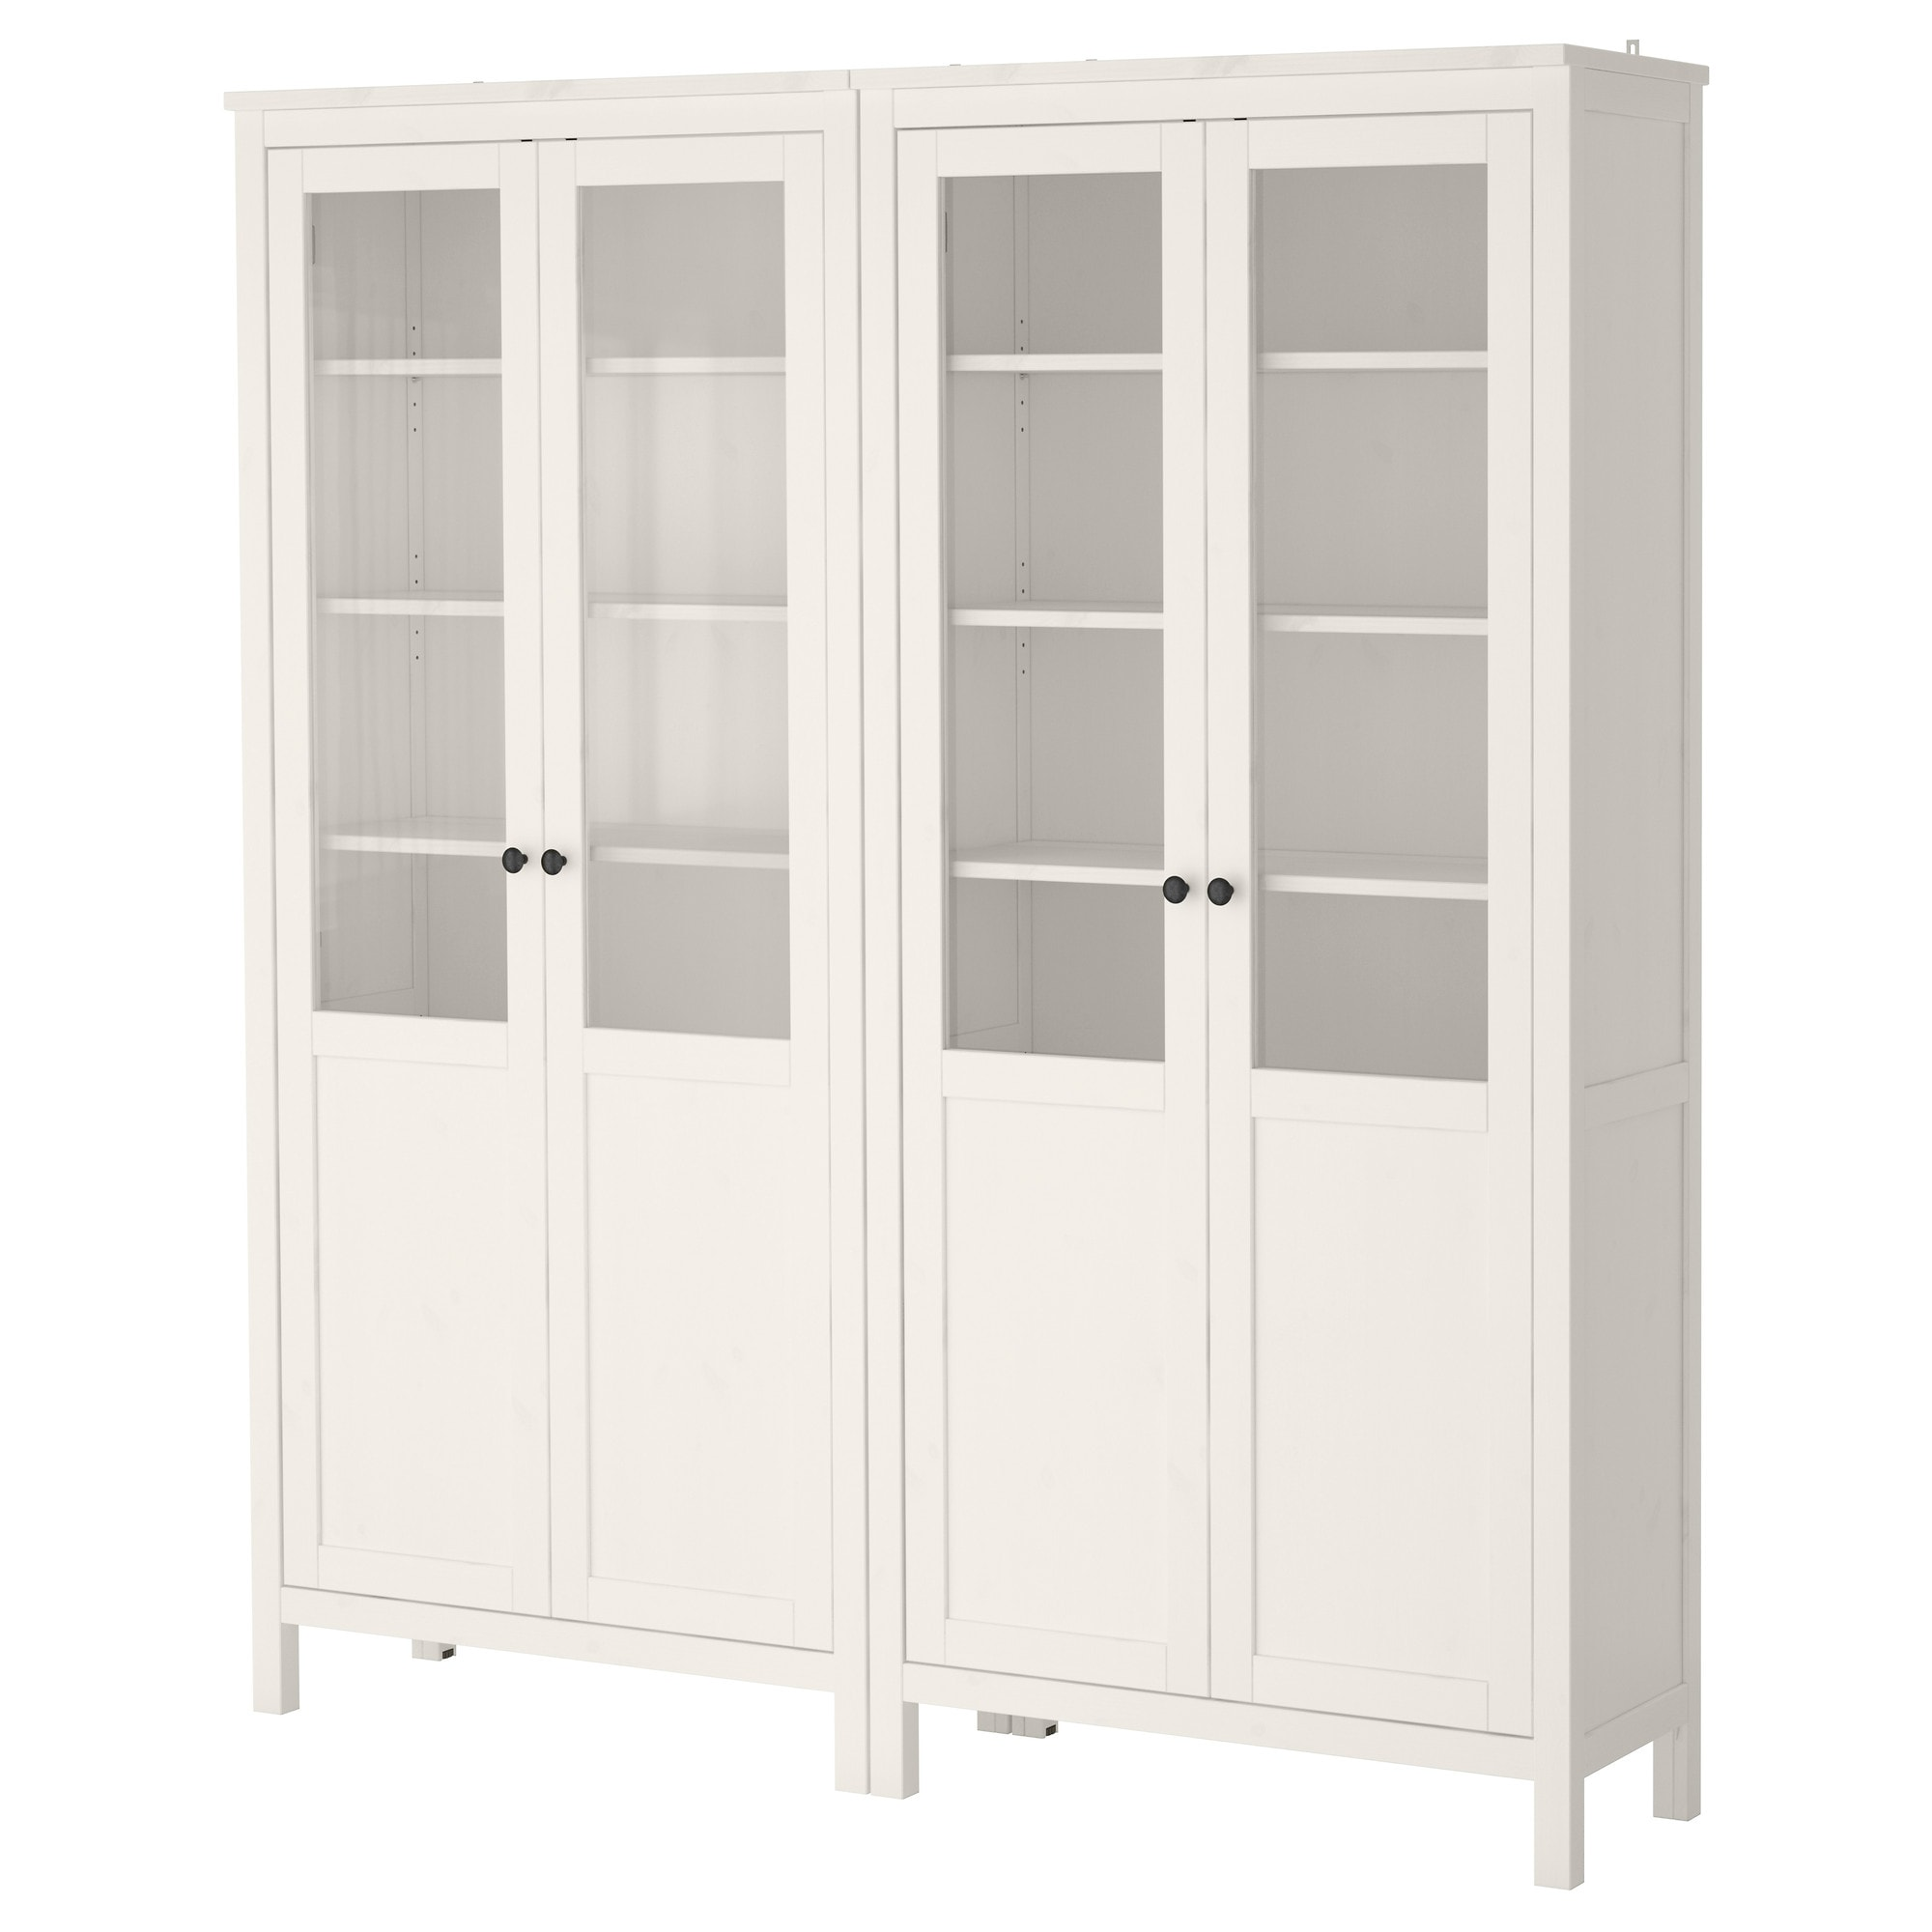 HEMNES Storage Combination W/glass Doors   White Stain   IKEA